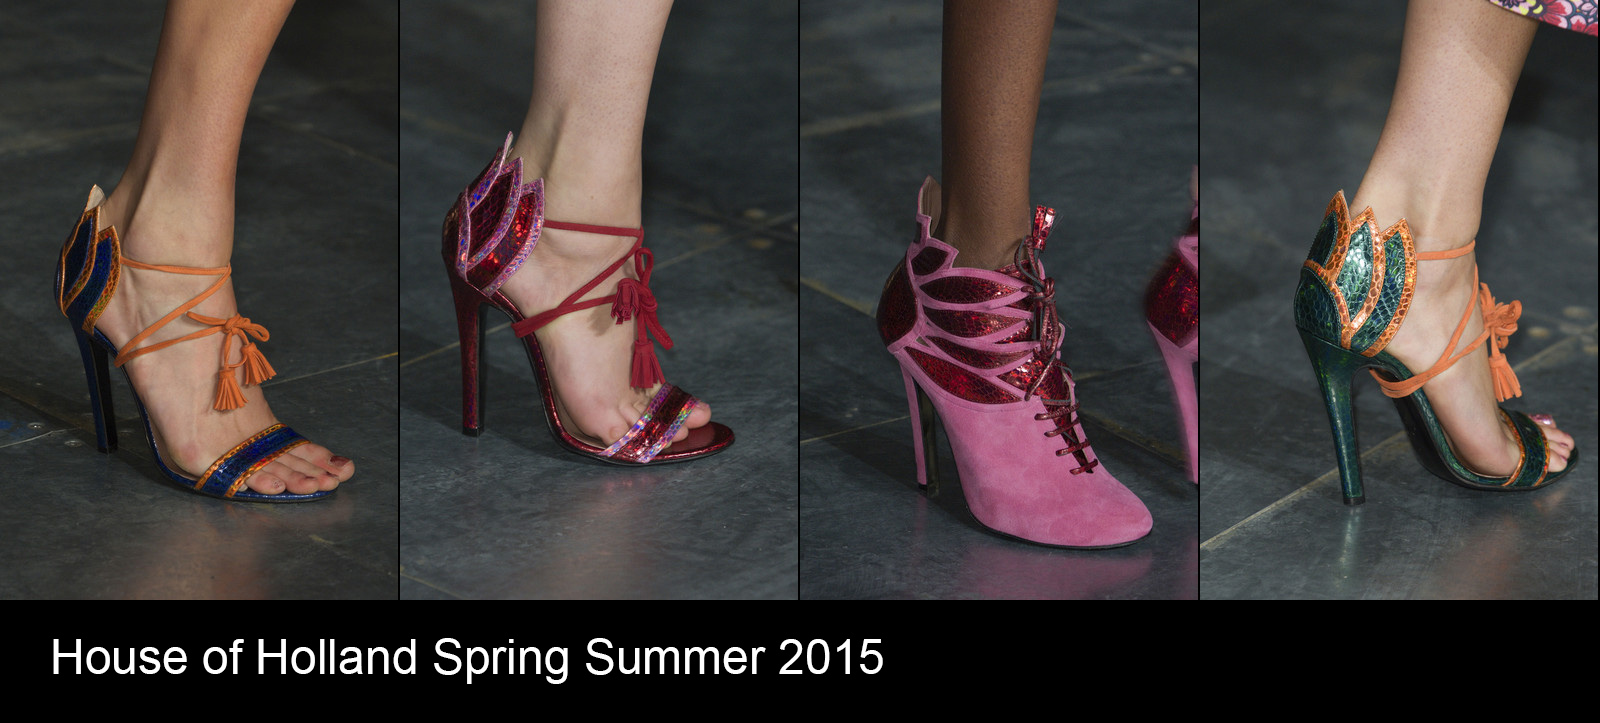 House of Holland runway shoes spring summer 2015